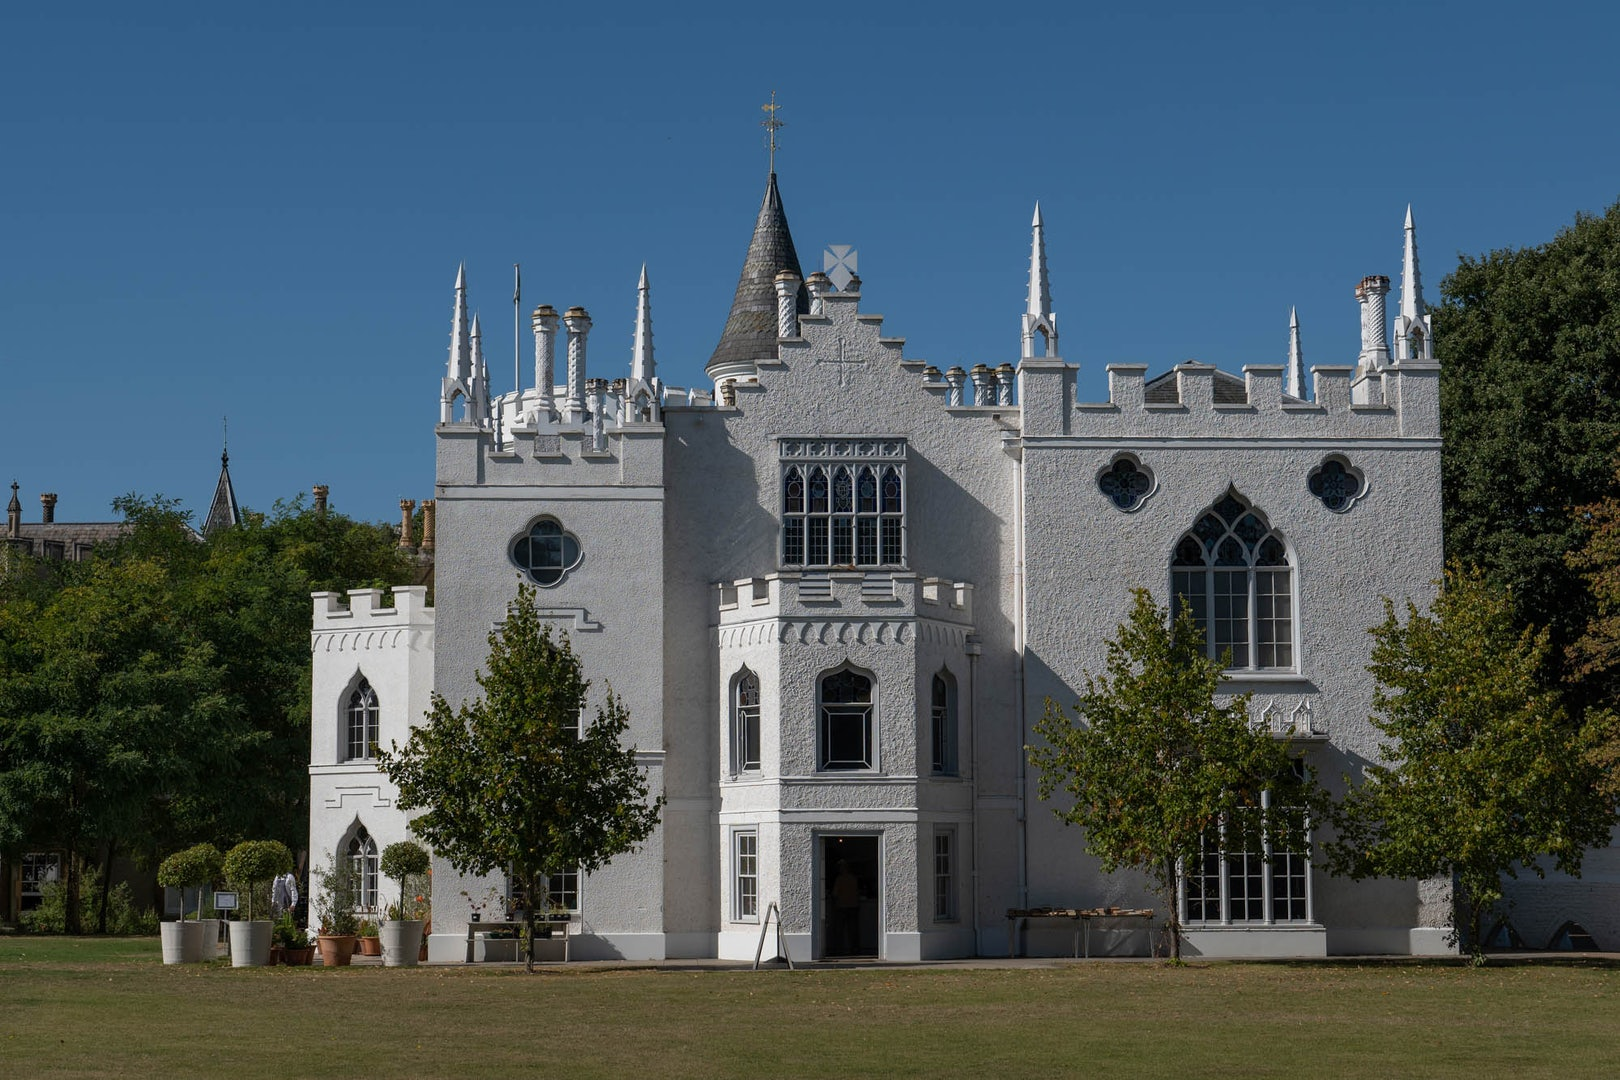 white exterior of the Strawberry Hill House London